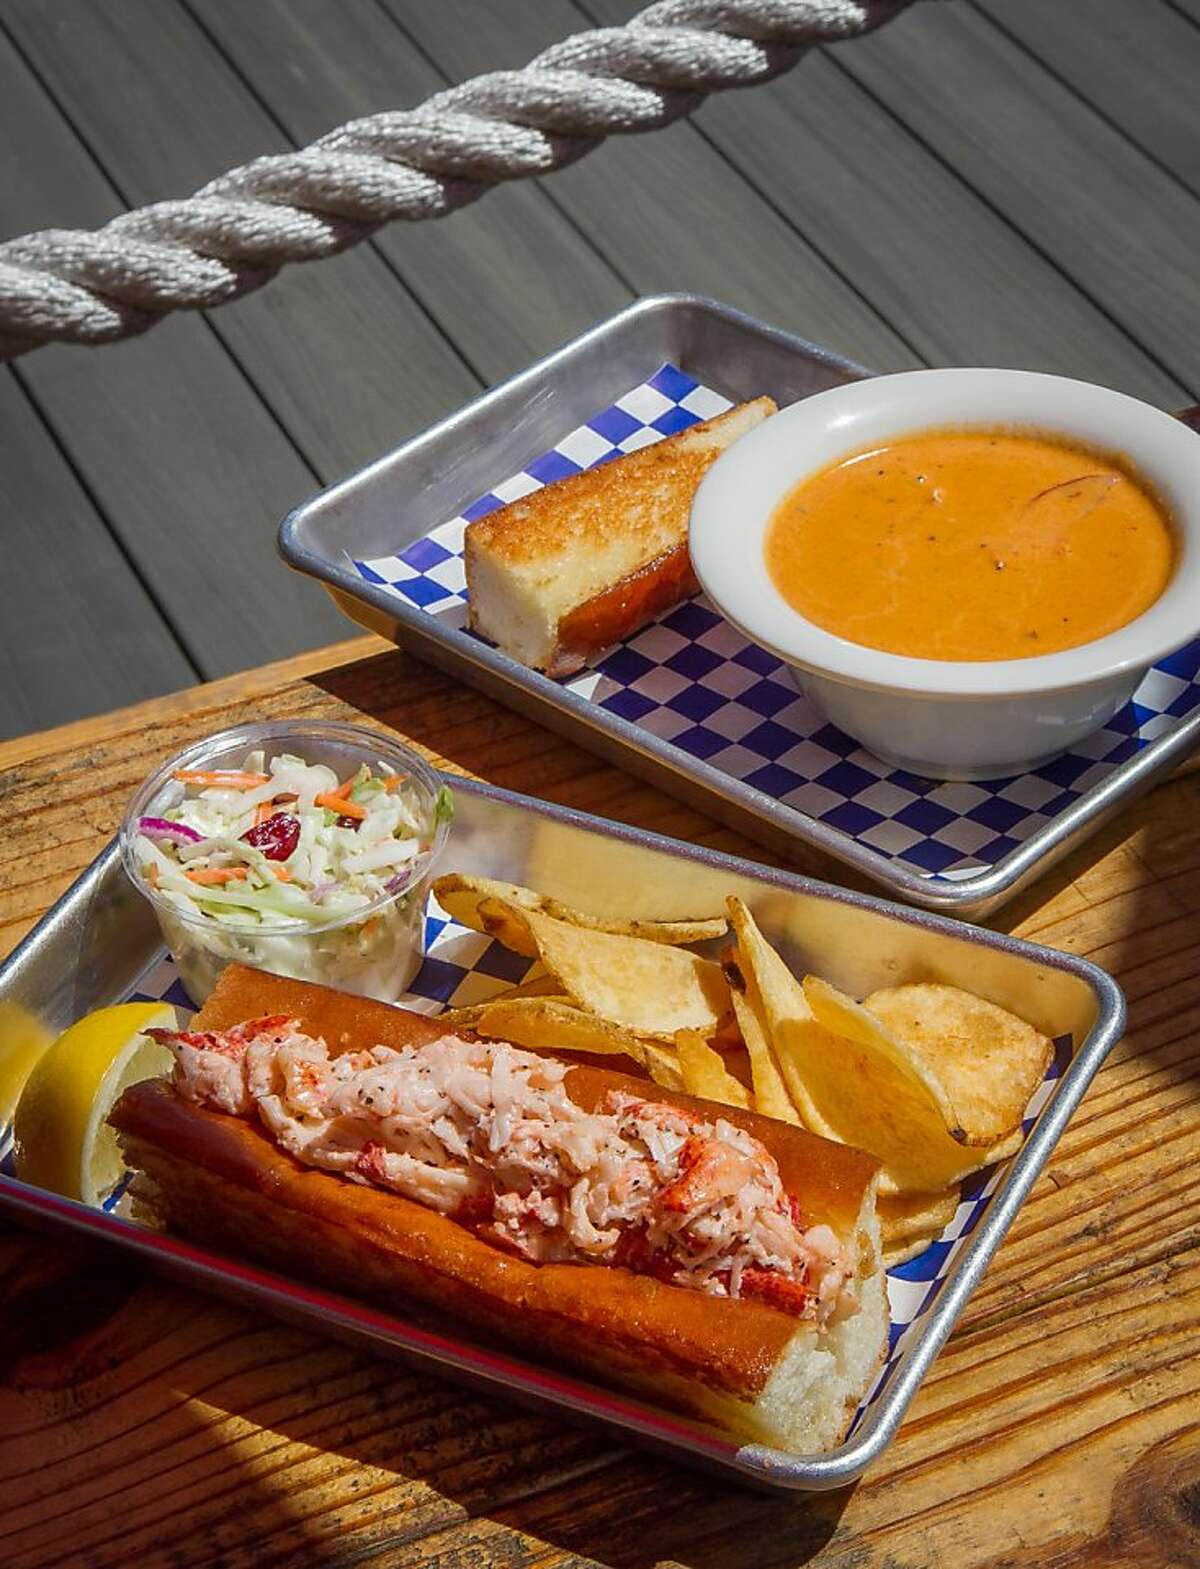 The Lobster roll with a bowl of Clam Chowder at the New England Lobster Company in Burlingame, Calif., is seen on Tuesday, April 30th, 2012.